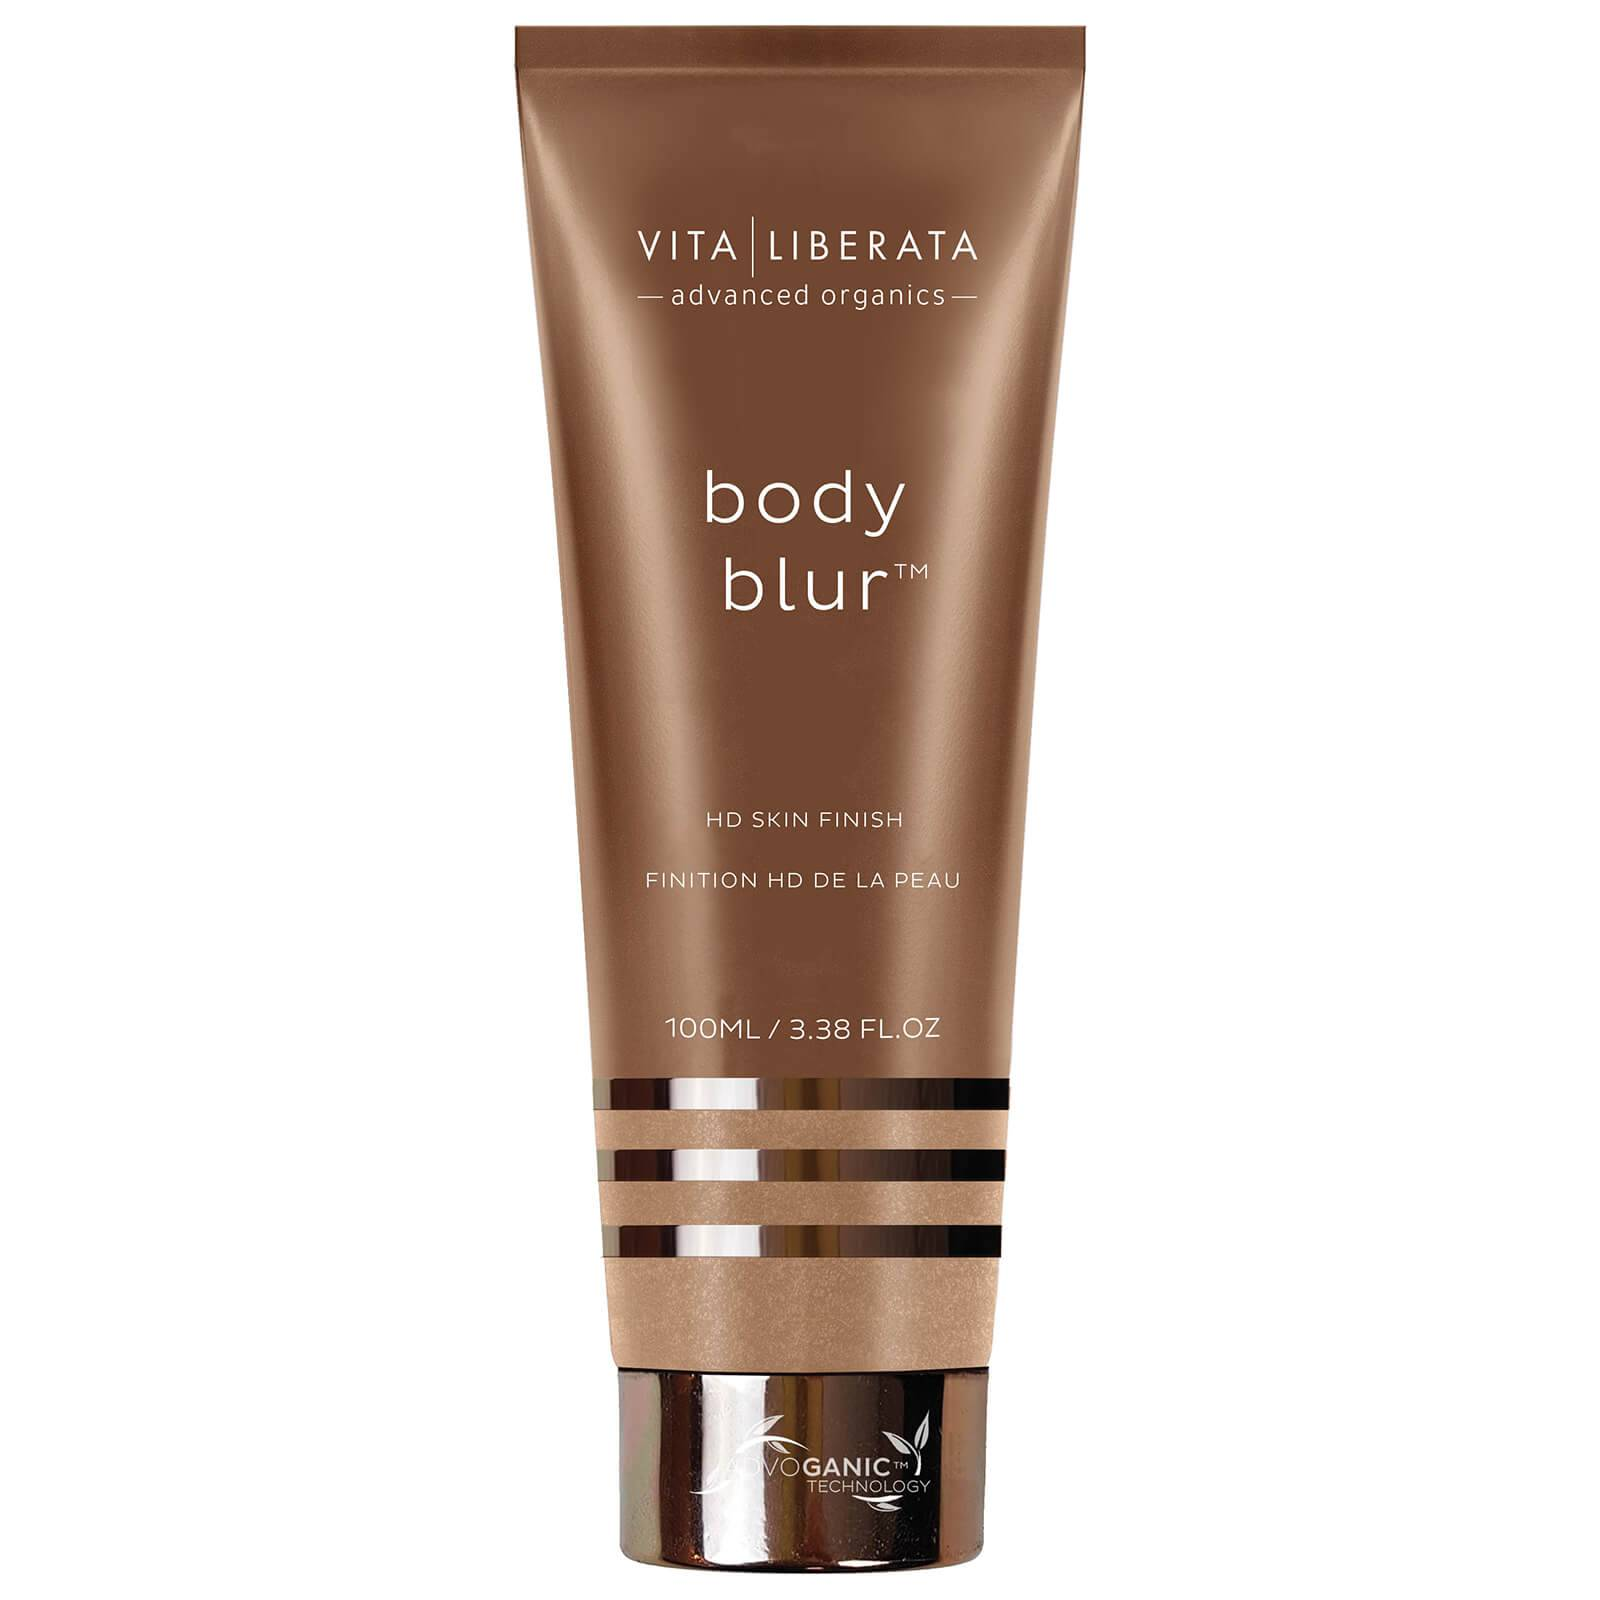 Vita Liberata Body Blur Sunless Glow HD Skin Finish bronzer corpo e viso con finitura HD - Latte Light